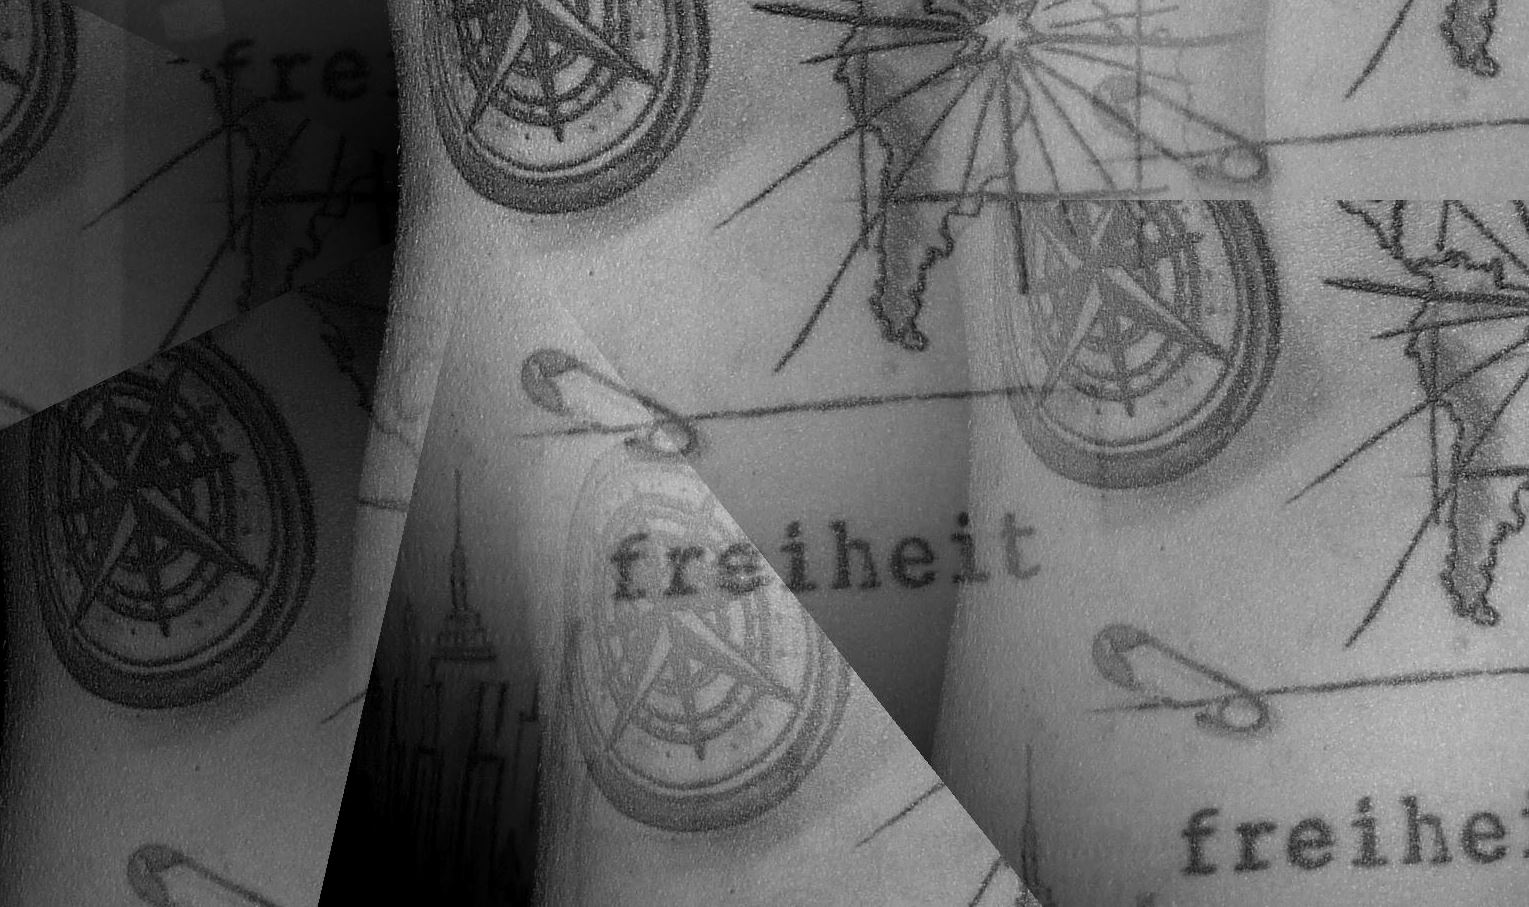 Tattoo mit Reisemotiven